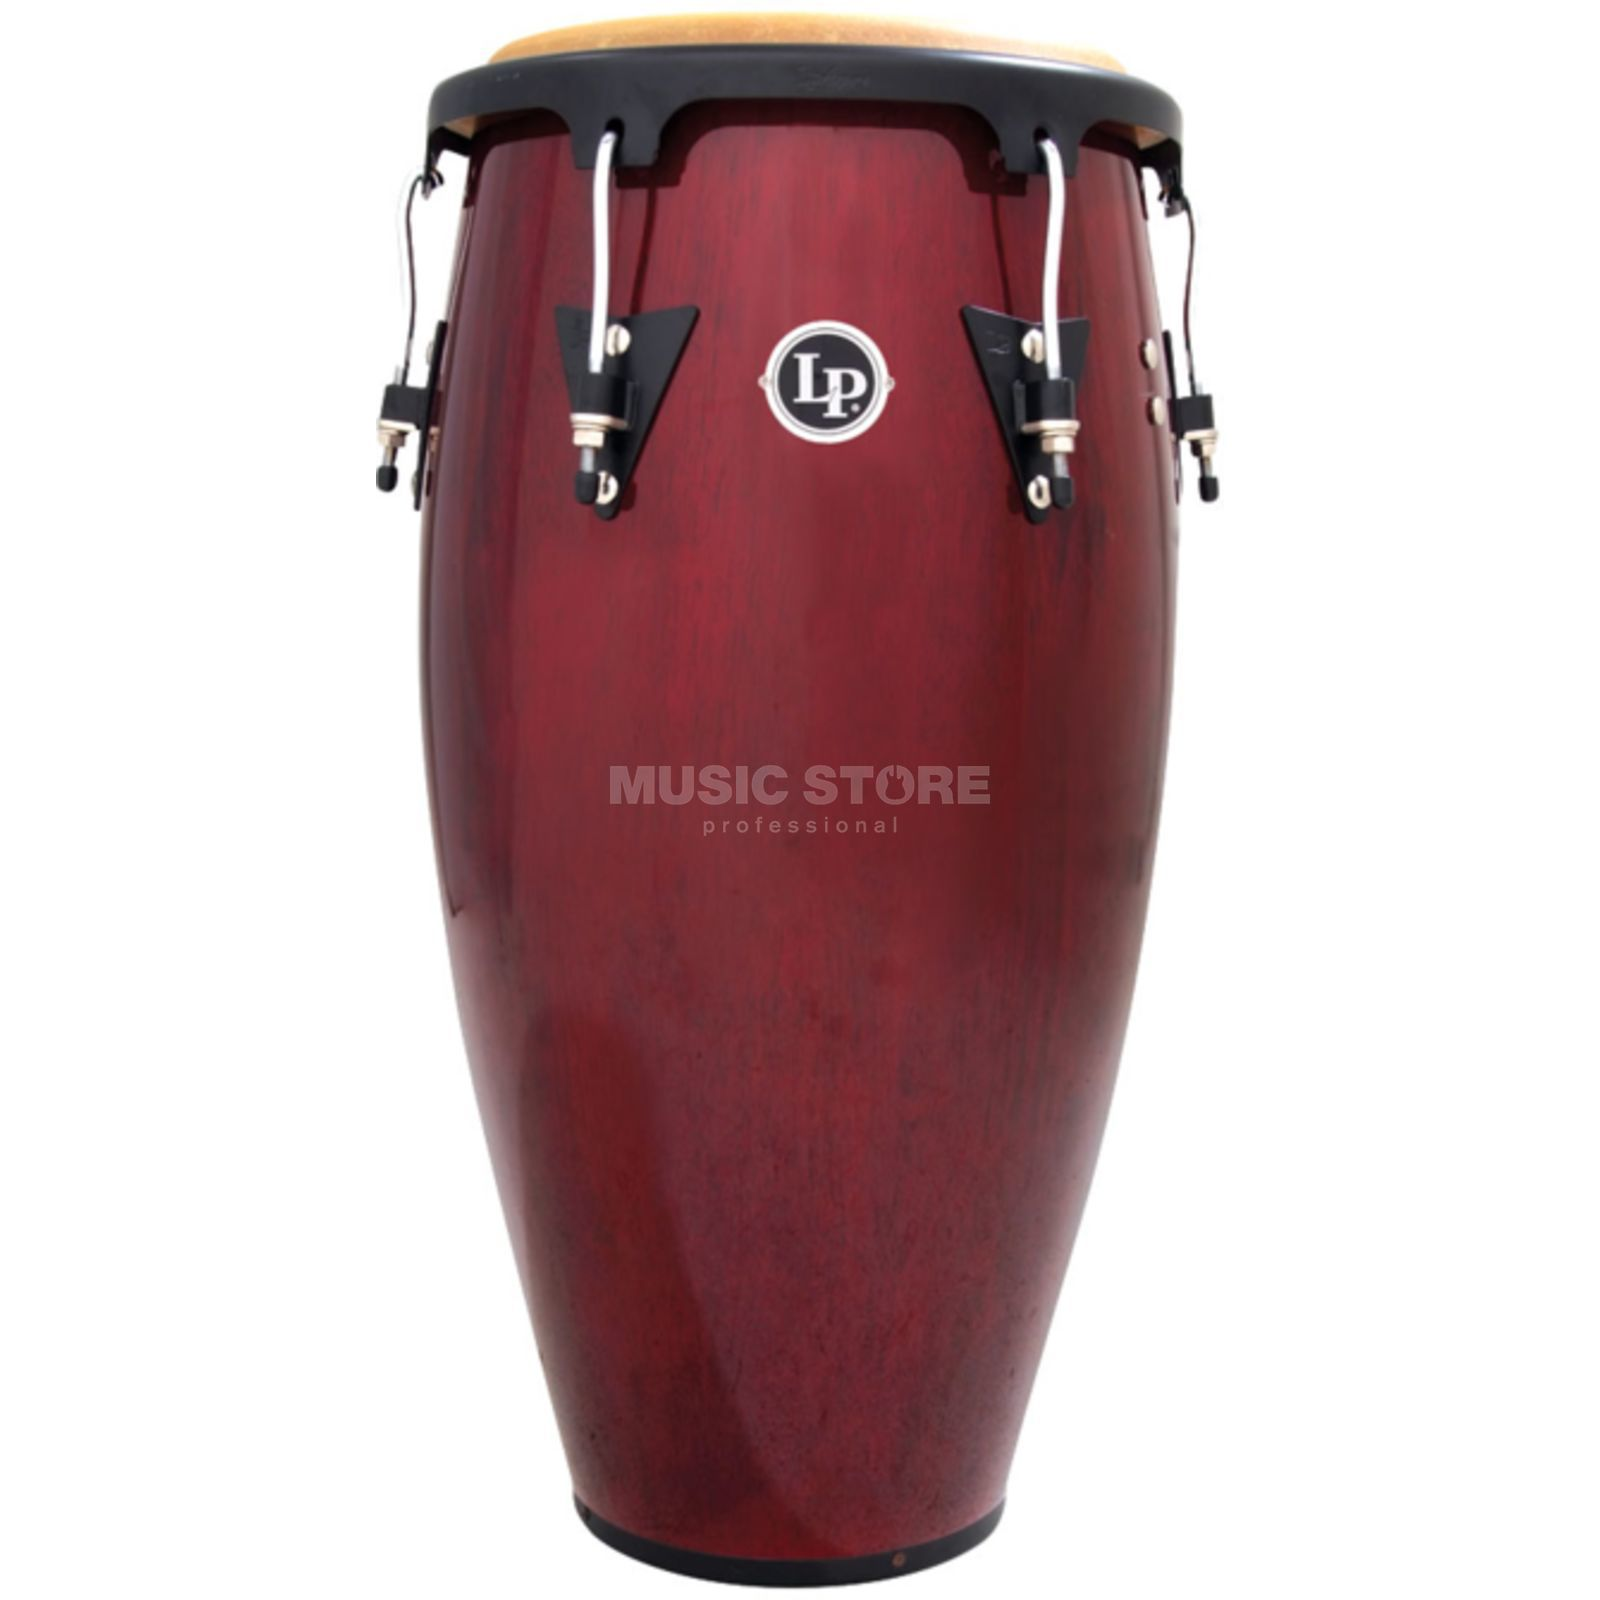 "Latin Percussion Aspire Conga LPA612-DW, 12"" Tumba, Dark Wood #DW Изображение товара"